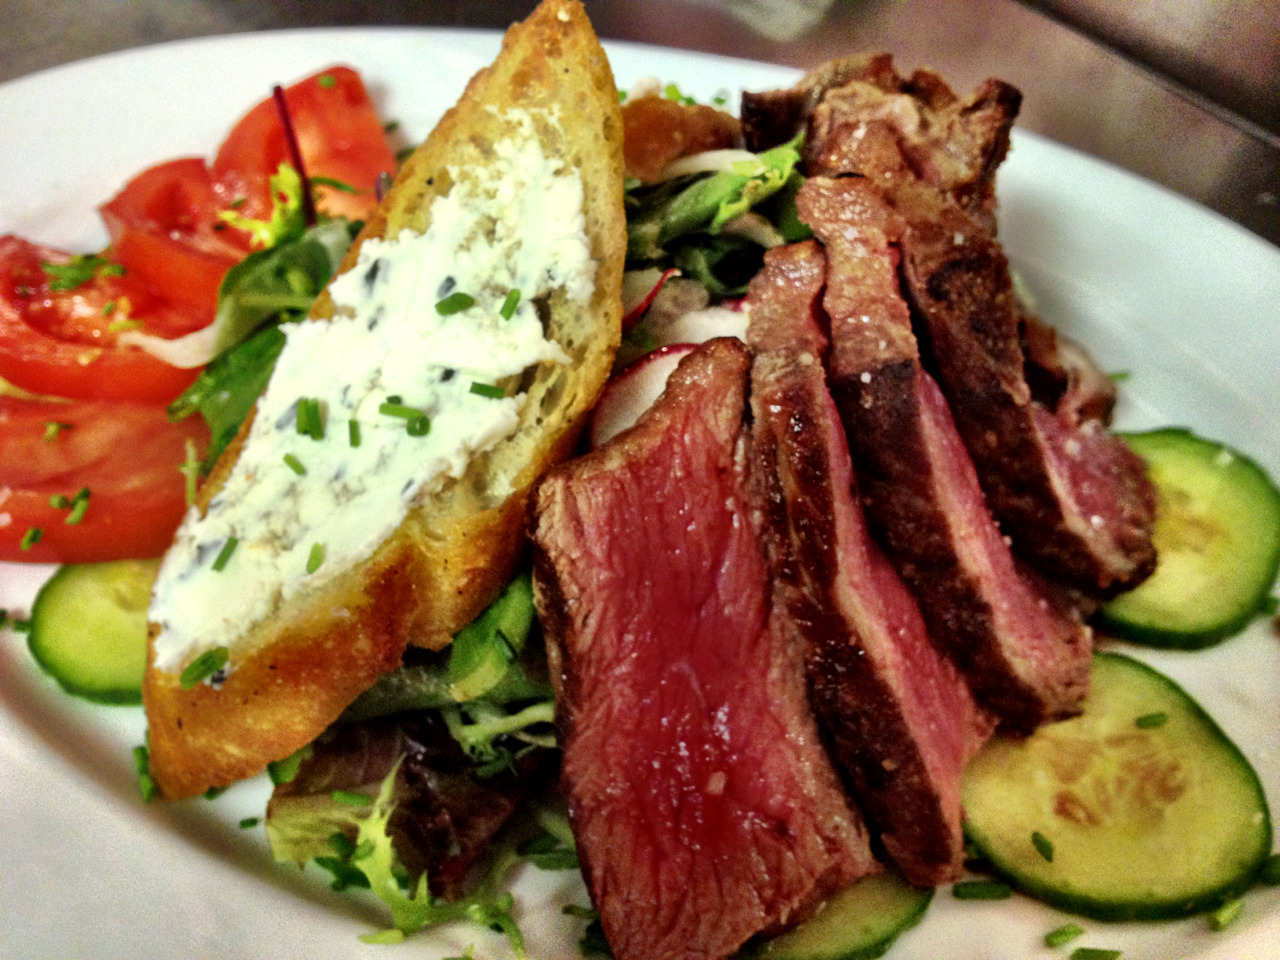 Menu item of the day: Sirloin Steak Salad with arugula, tomato, cucumber, goat cheese crostini.  Lunch menu $18